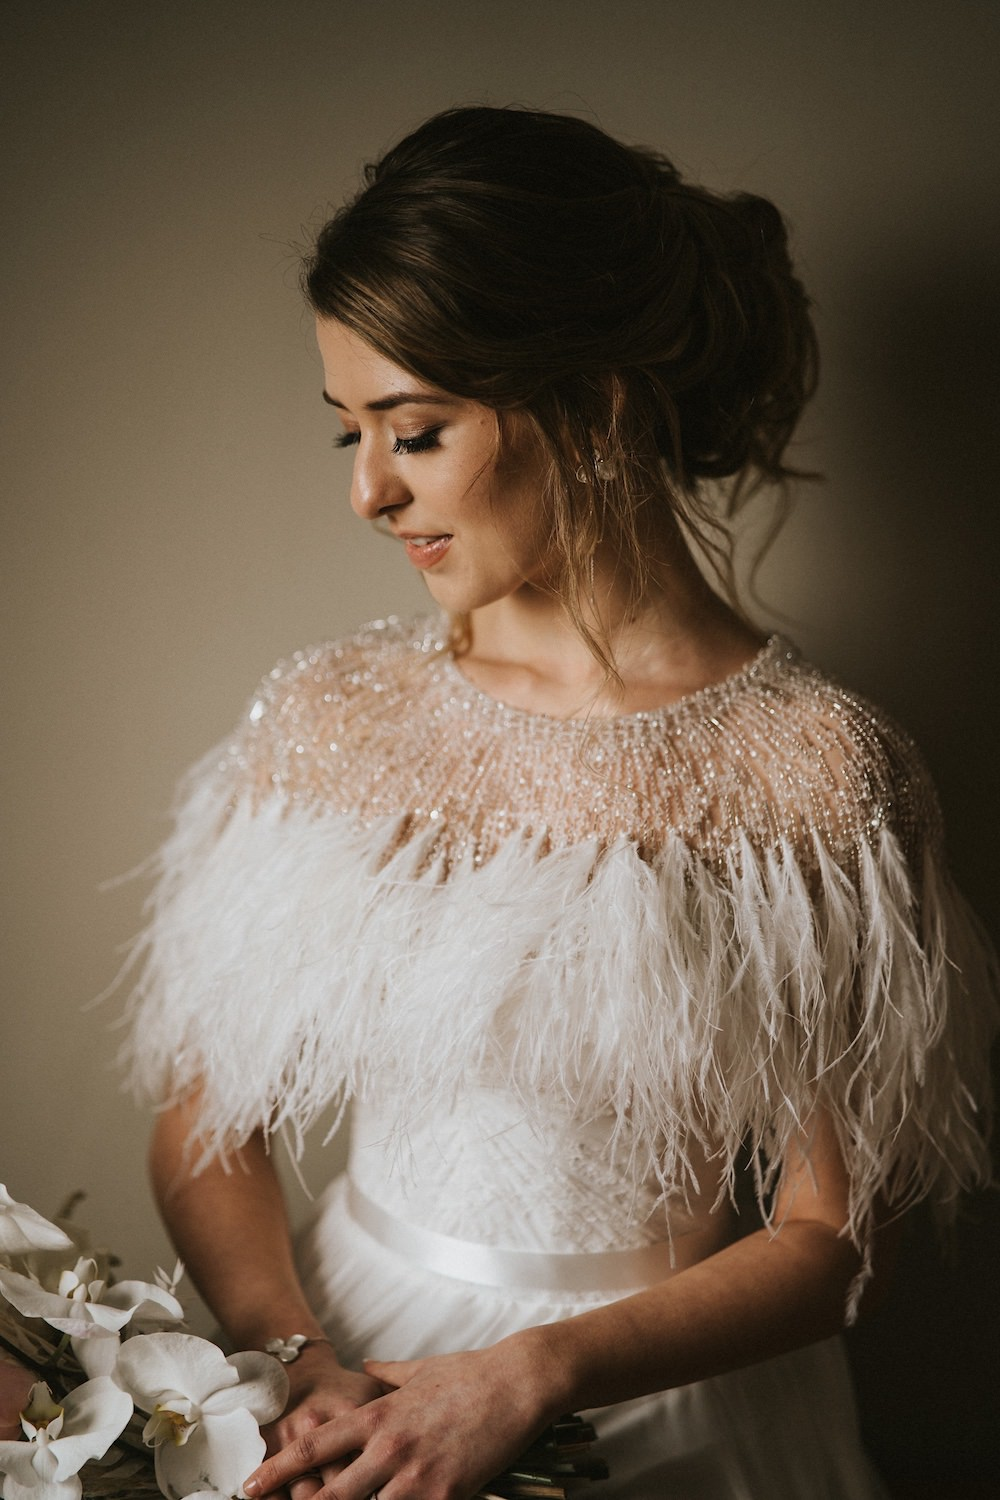 Dress Gown Bride Bridal Strapless Feather Cape Bolero Ballet Wedding Ideas Henry Lowther Photographer